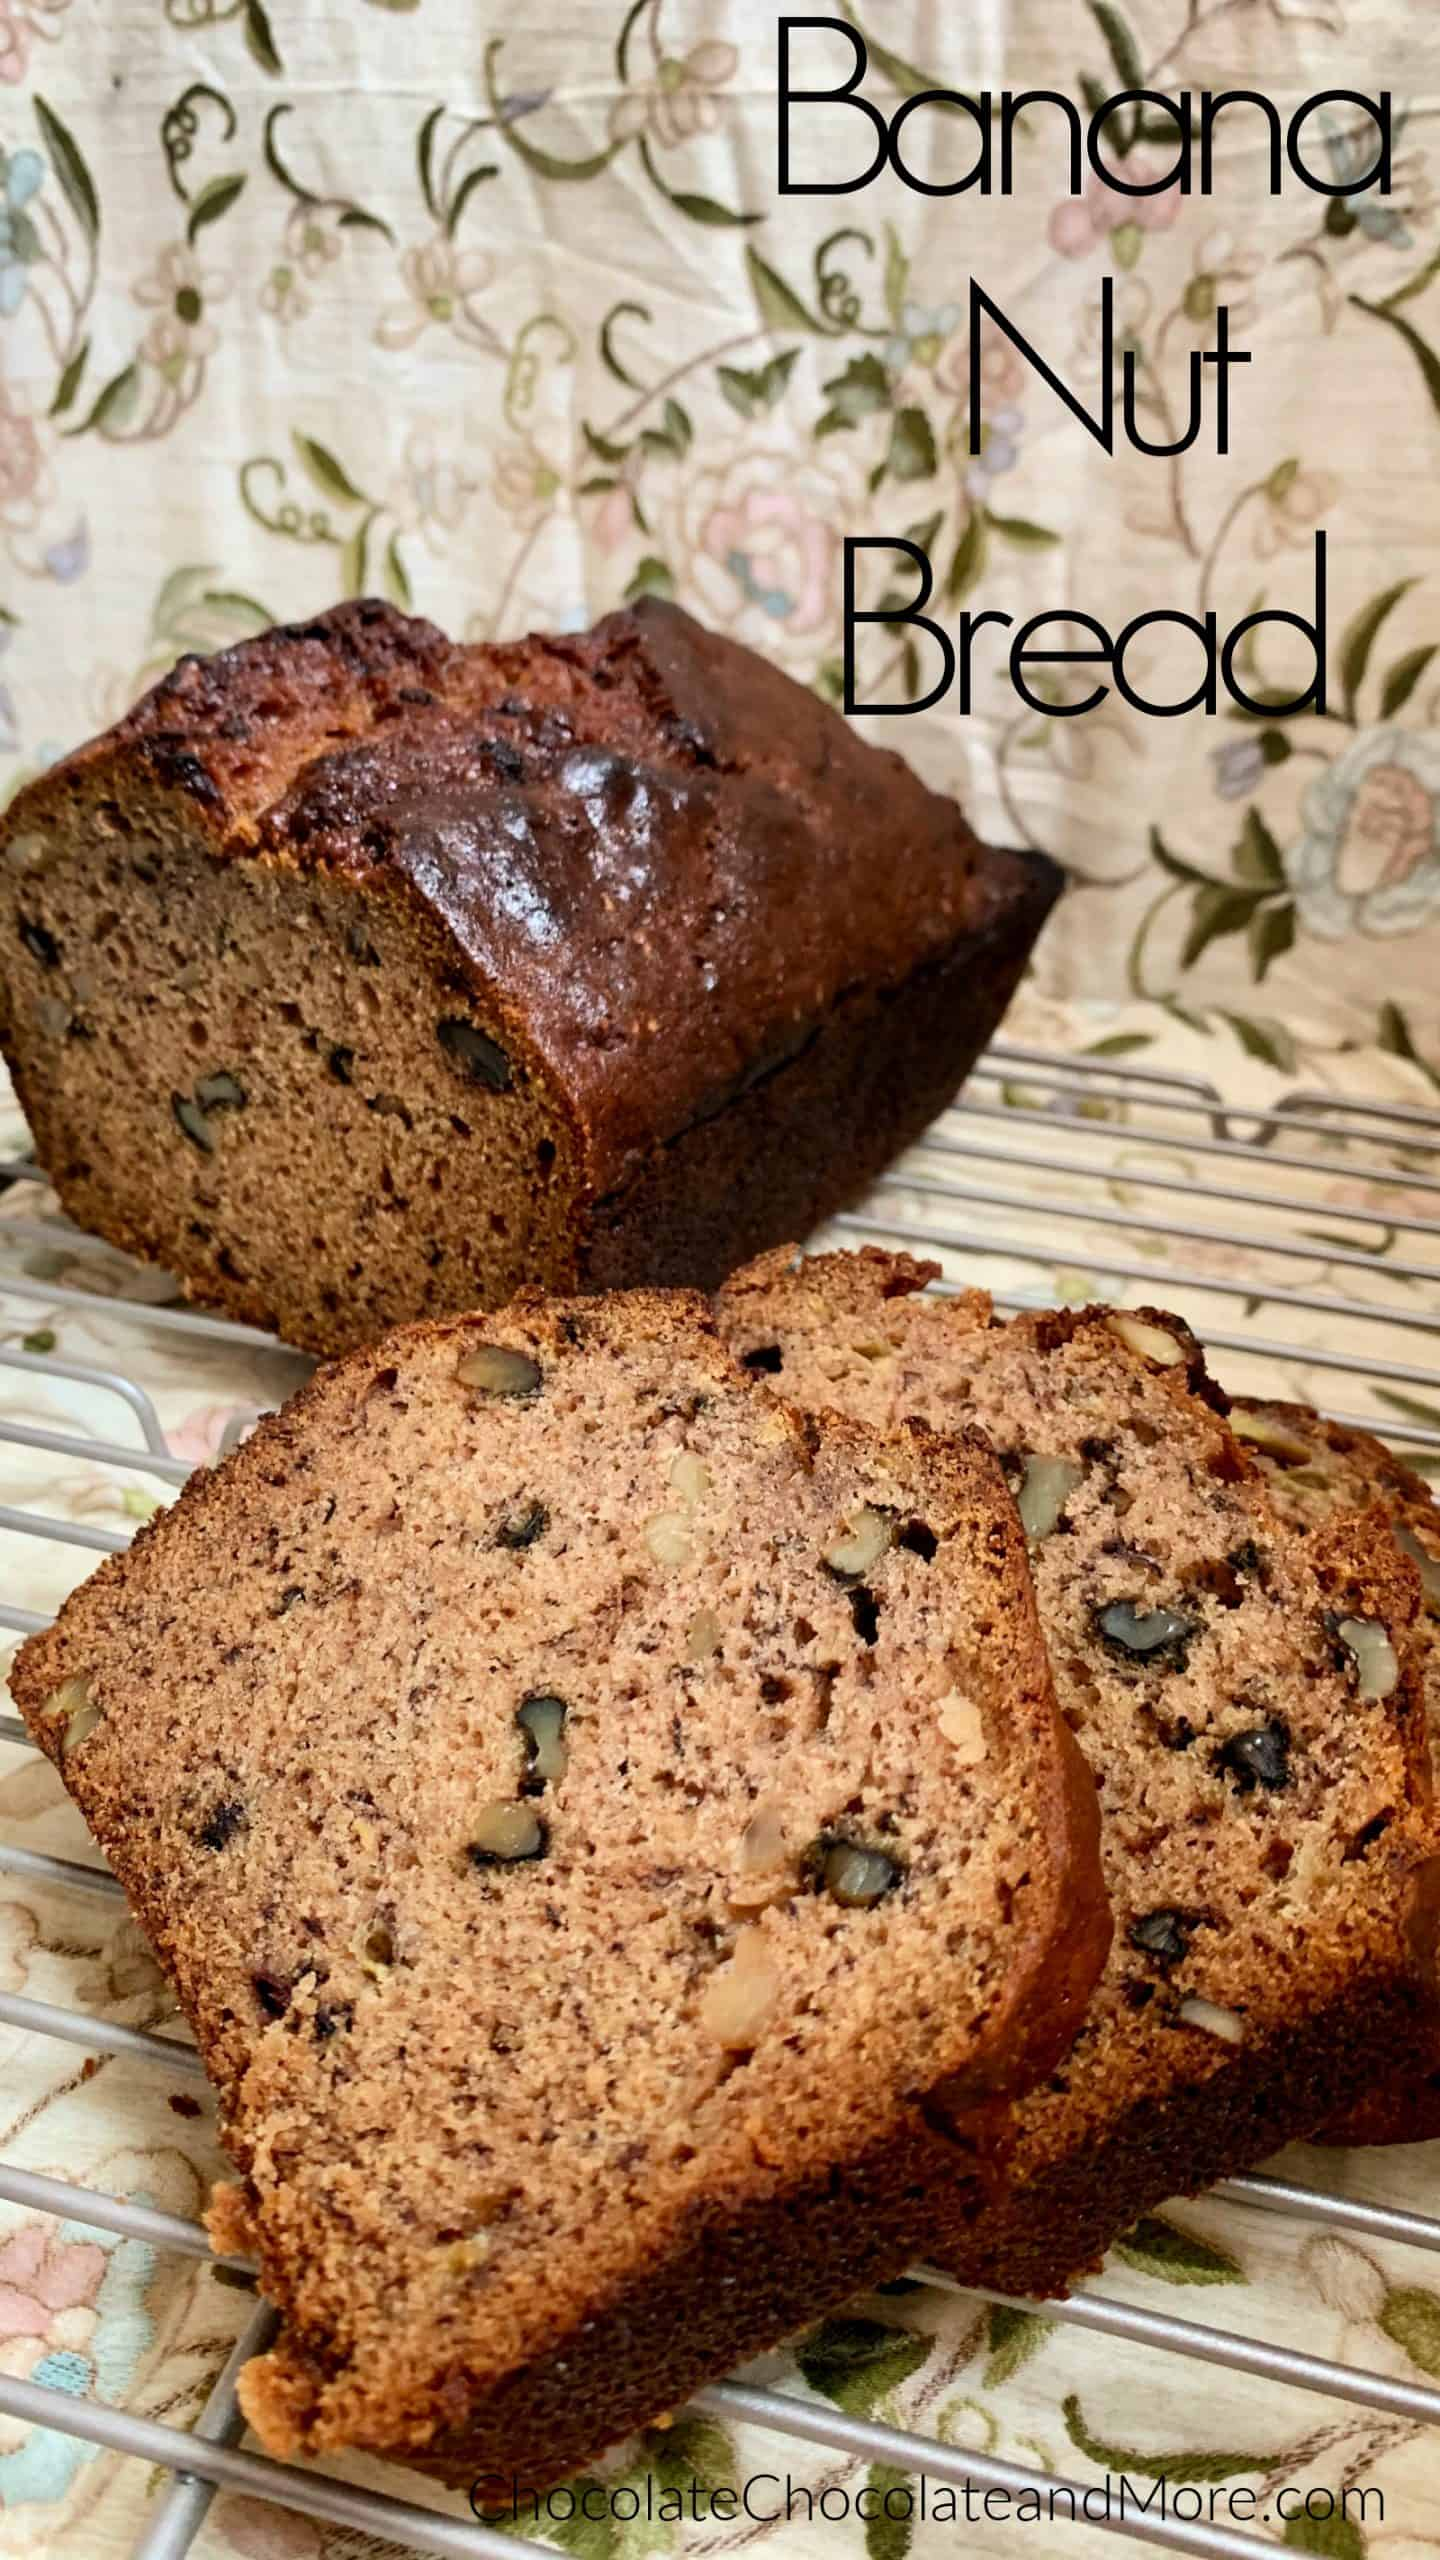 This flavorful Banana Nut Bread is sure to leave you wanting more. Its rich banana and cinnamon flavor along with the crunchy nuts is perfect breakfast or even just a quick snack! via @chocolatemore